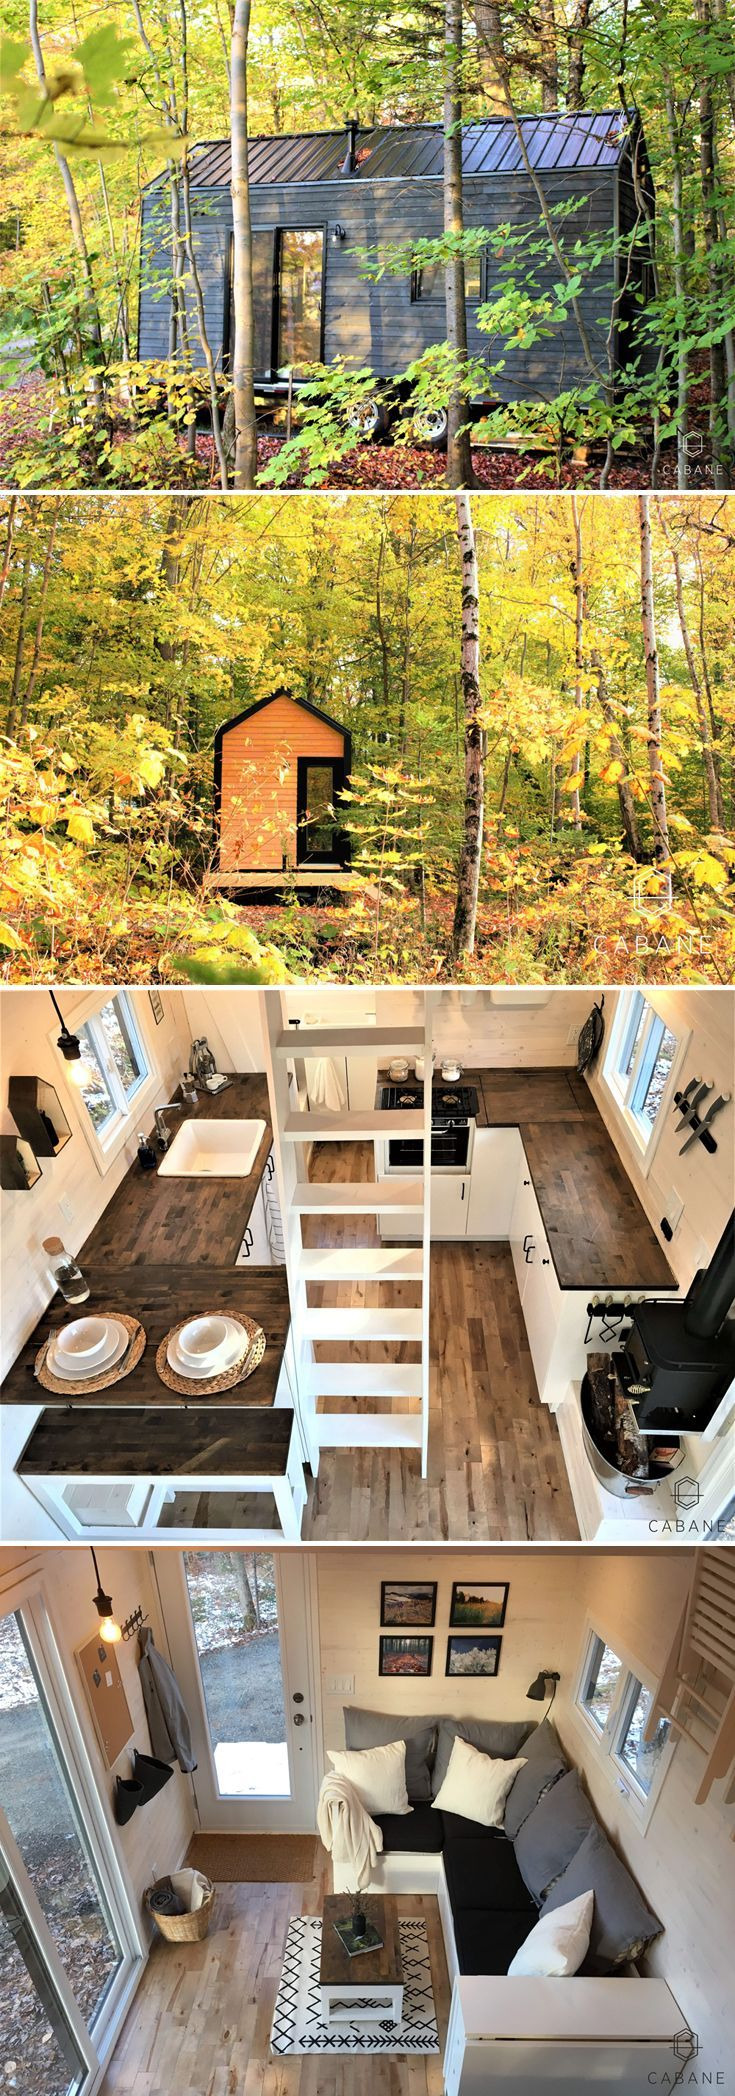 This 256-square-foot Scandinavian-inspired tiny cabin is 20-feet long and can ac…    This 256-square-foot Scandinavian-inspired tiny cabin is 20-feet long and can accommodate up to five people between its two lofts and sleeper sofa. This 256-square-foot Scandinavian-inspired tiny cabin...